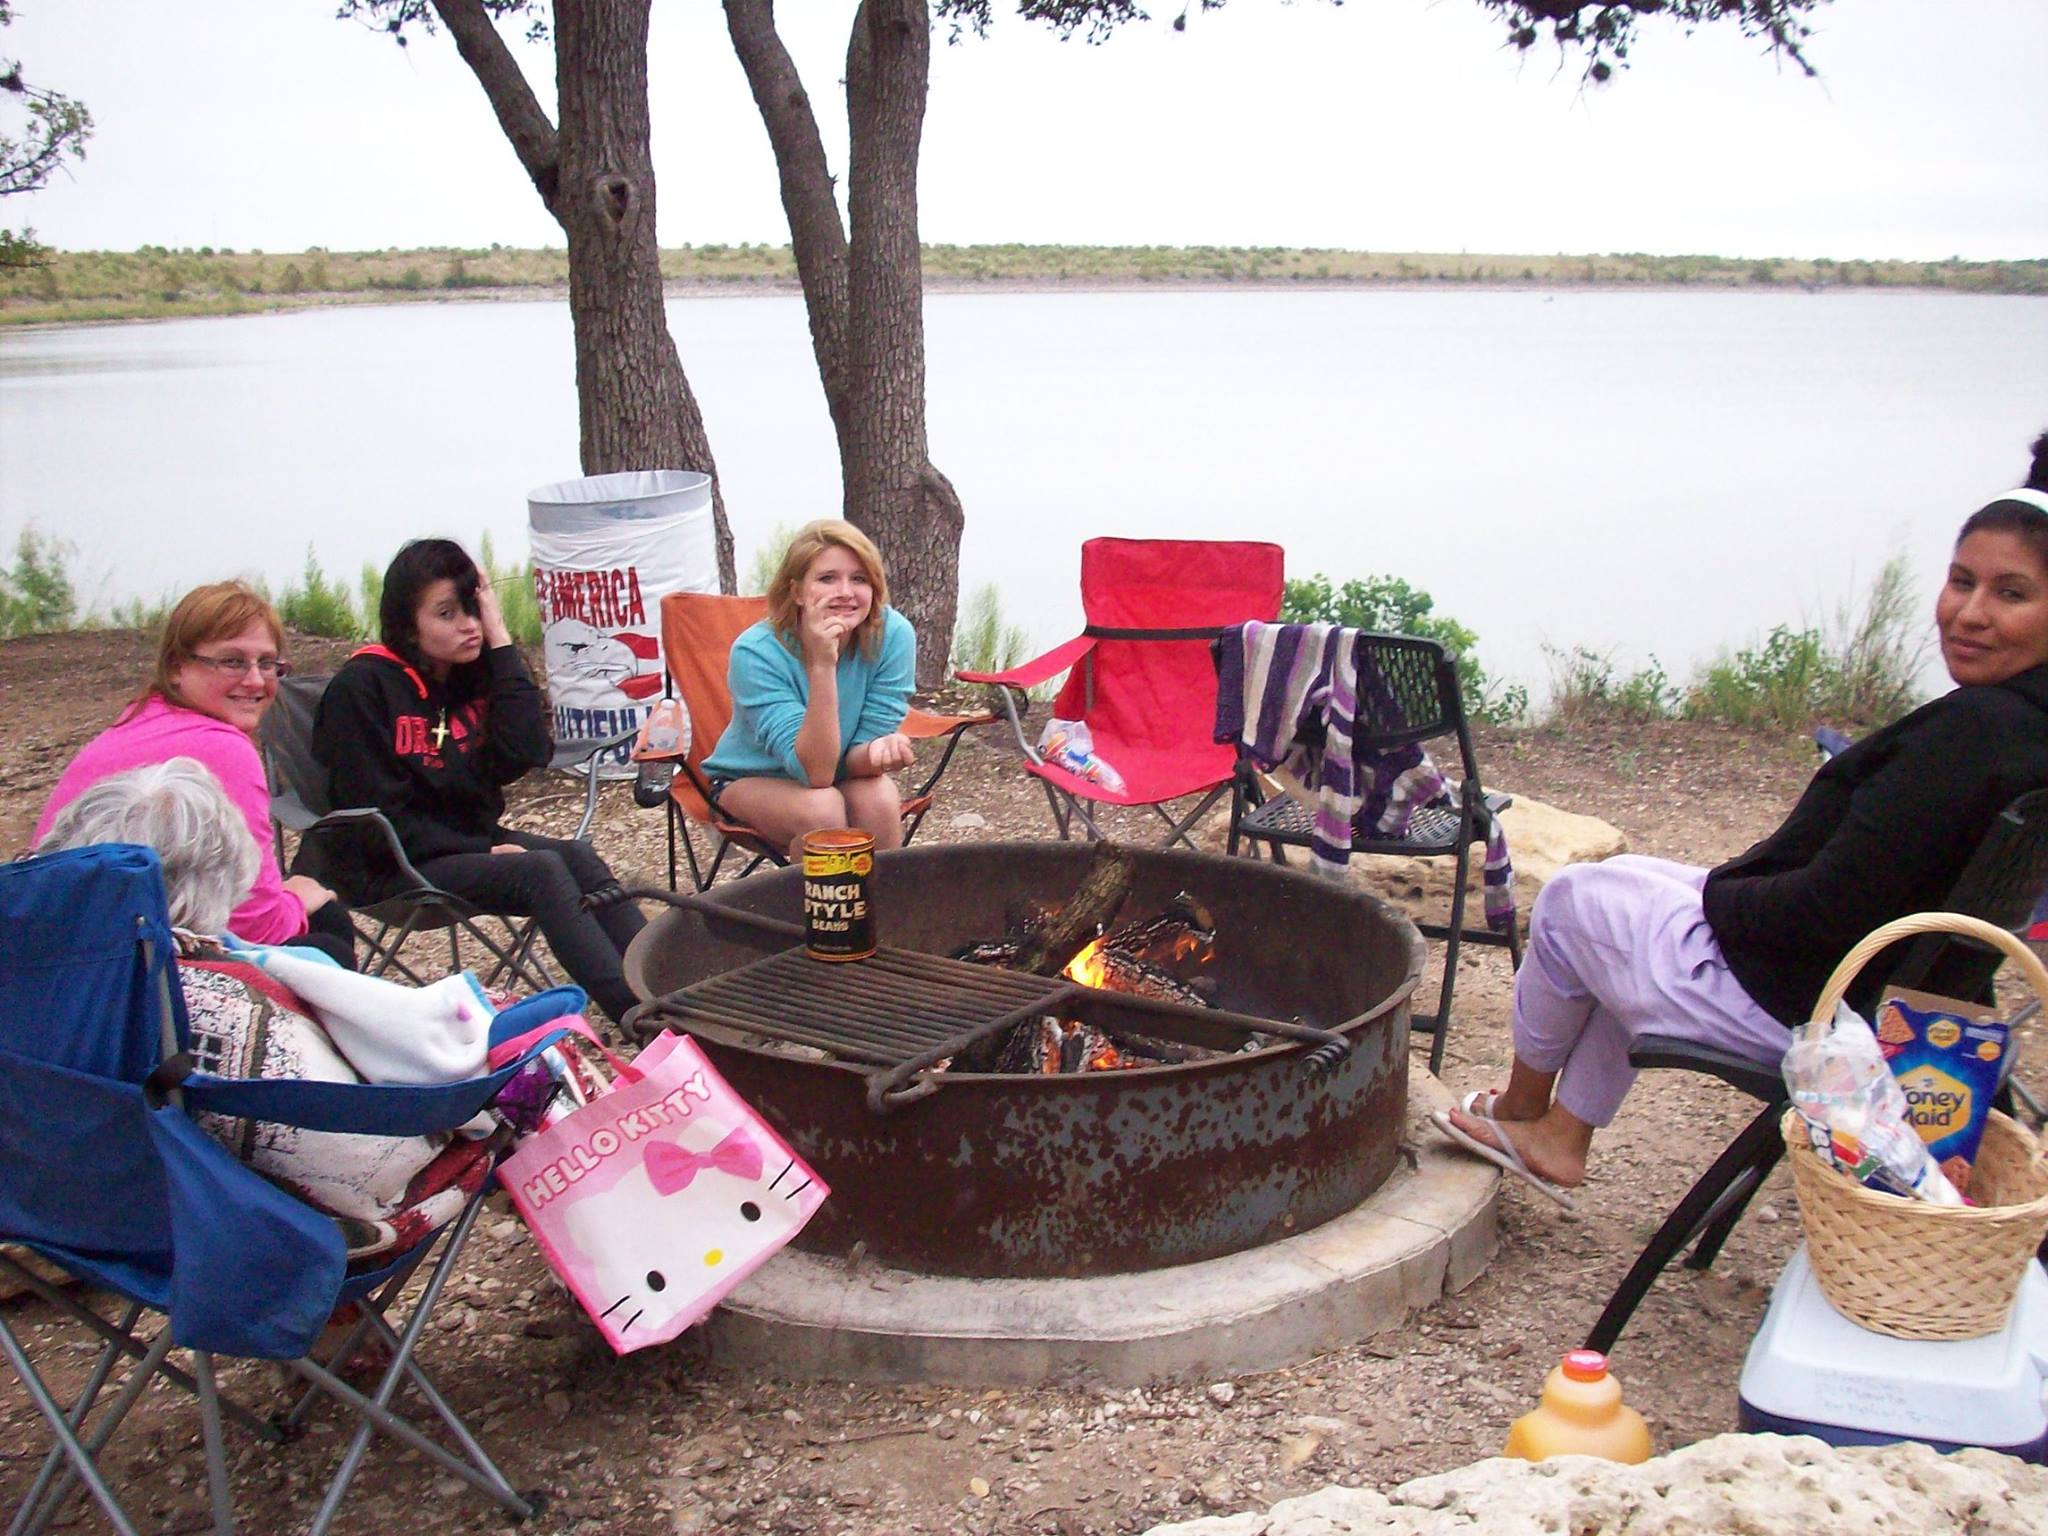 Group of 3 Girls Sitting Around a Camp Fire at a Lake